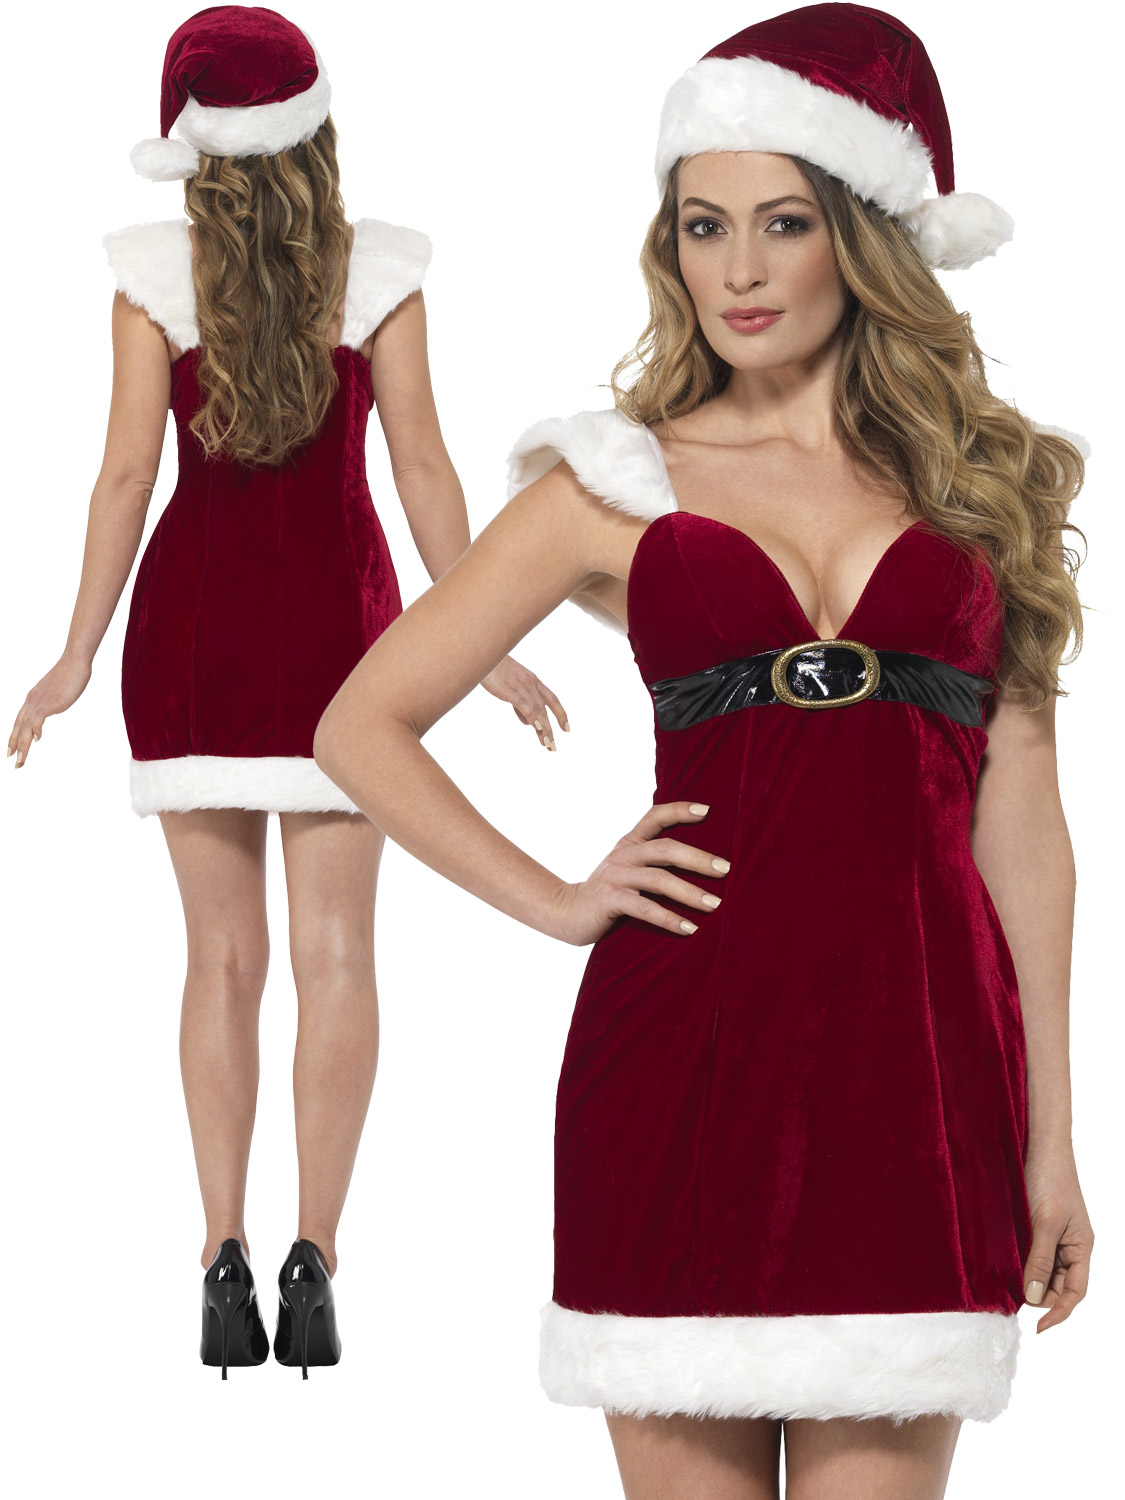 Ladies santa costume adult sexy miss christmas fancy dress womens transform yourself into a sexy mrs claus with this ladies miss santa costume ideal if you are dressing up for a christmas party solutioingenieria Images